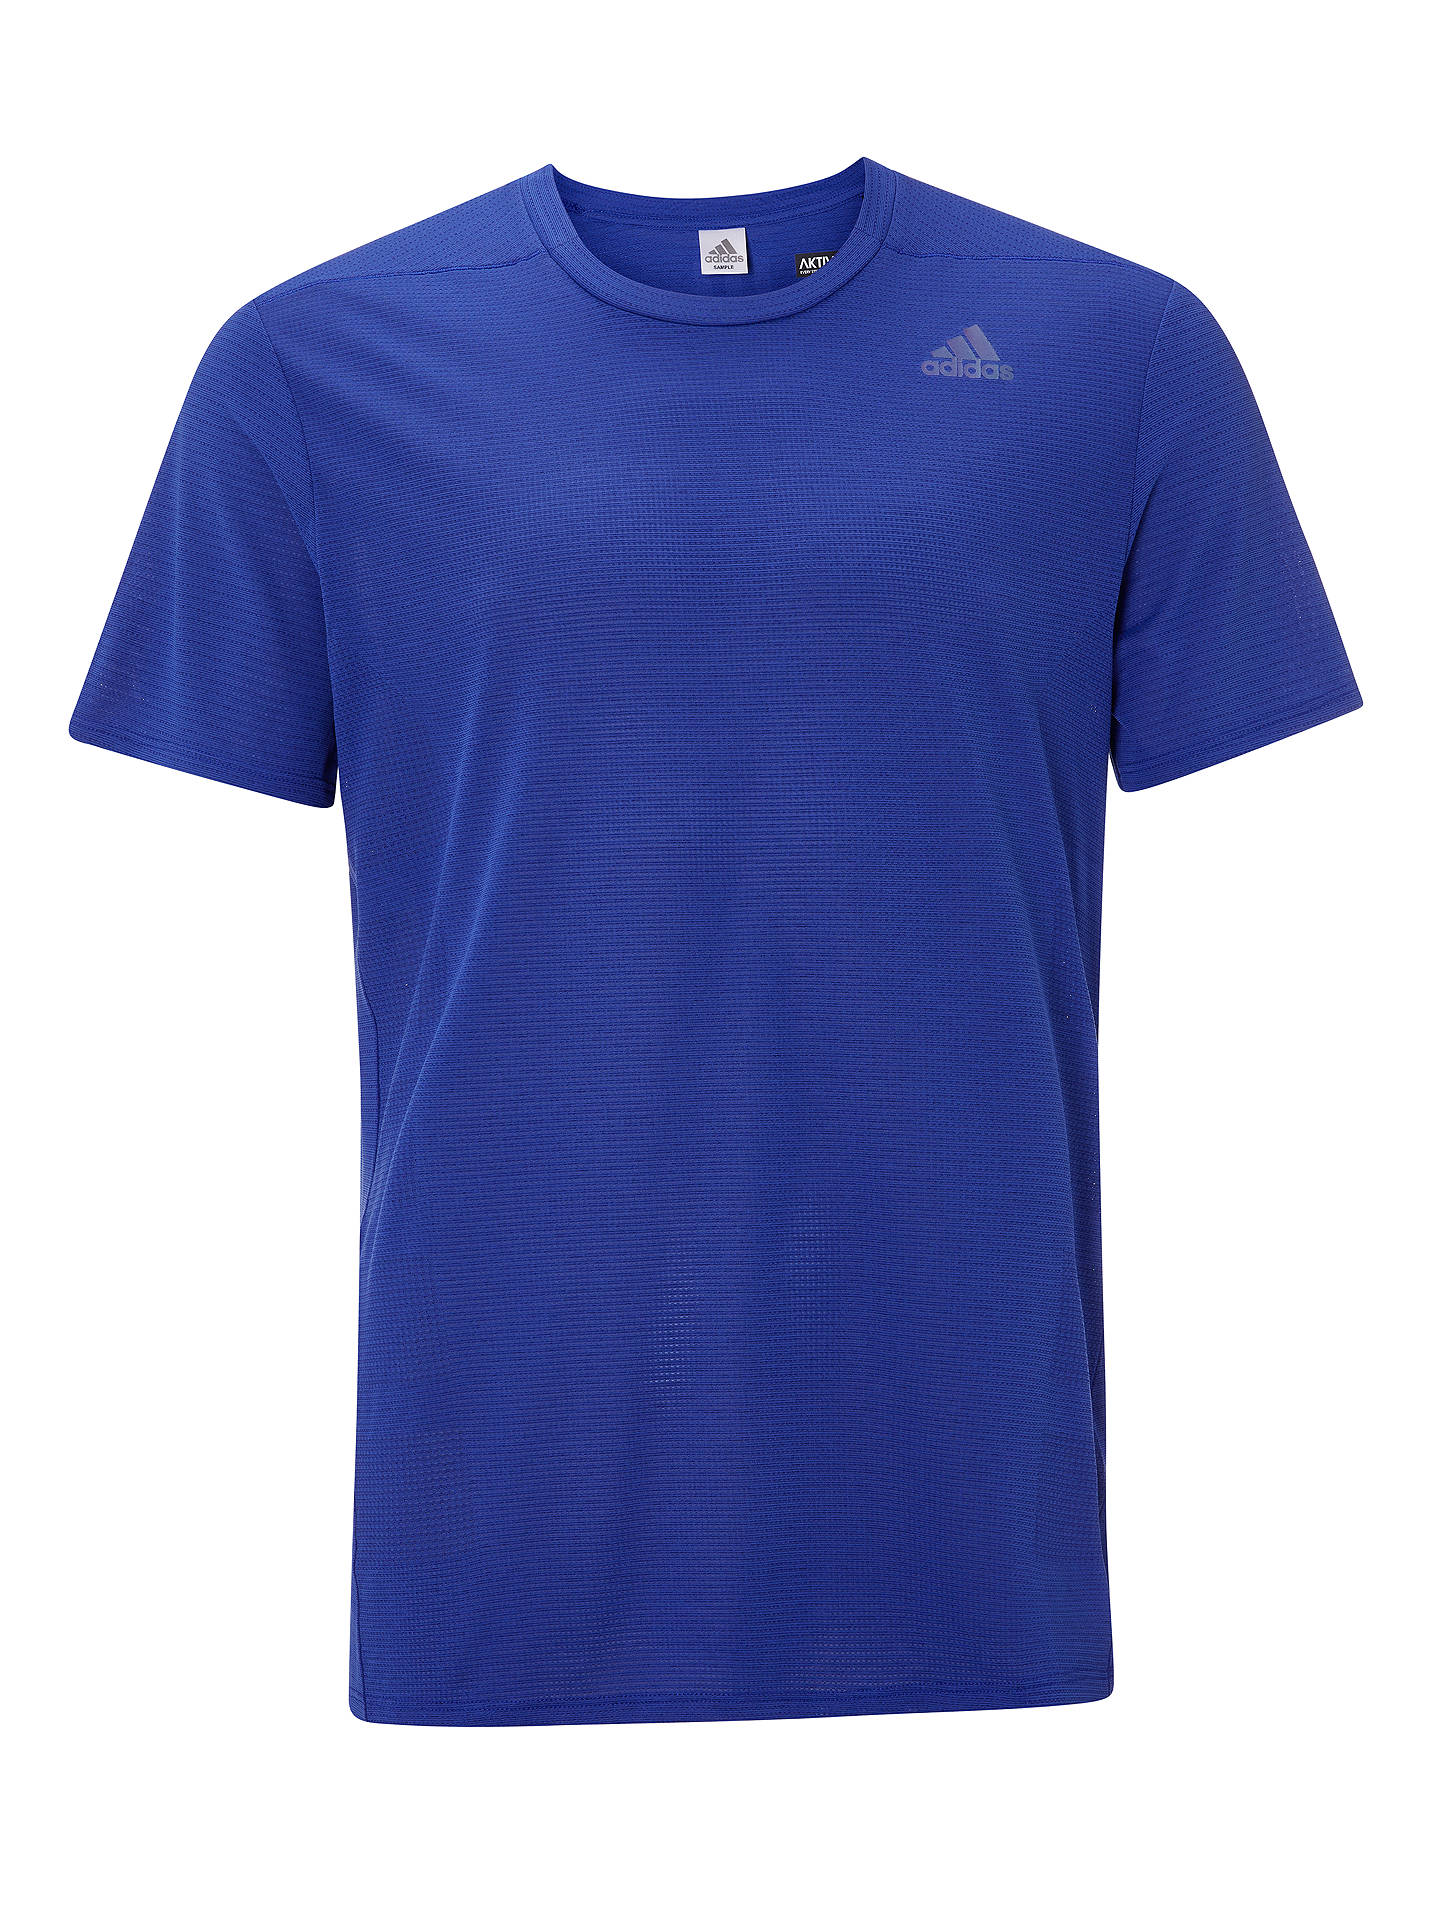 Buyadidas Supernova Short Sleeve Running Top, Blue, S Online at johnlewis.com